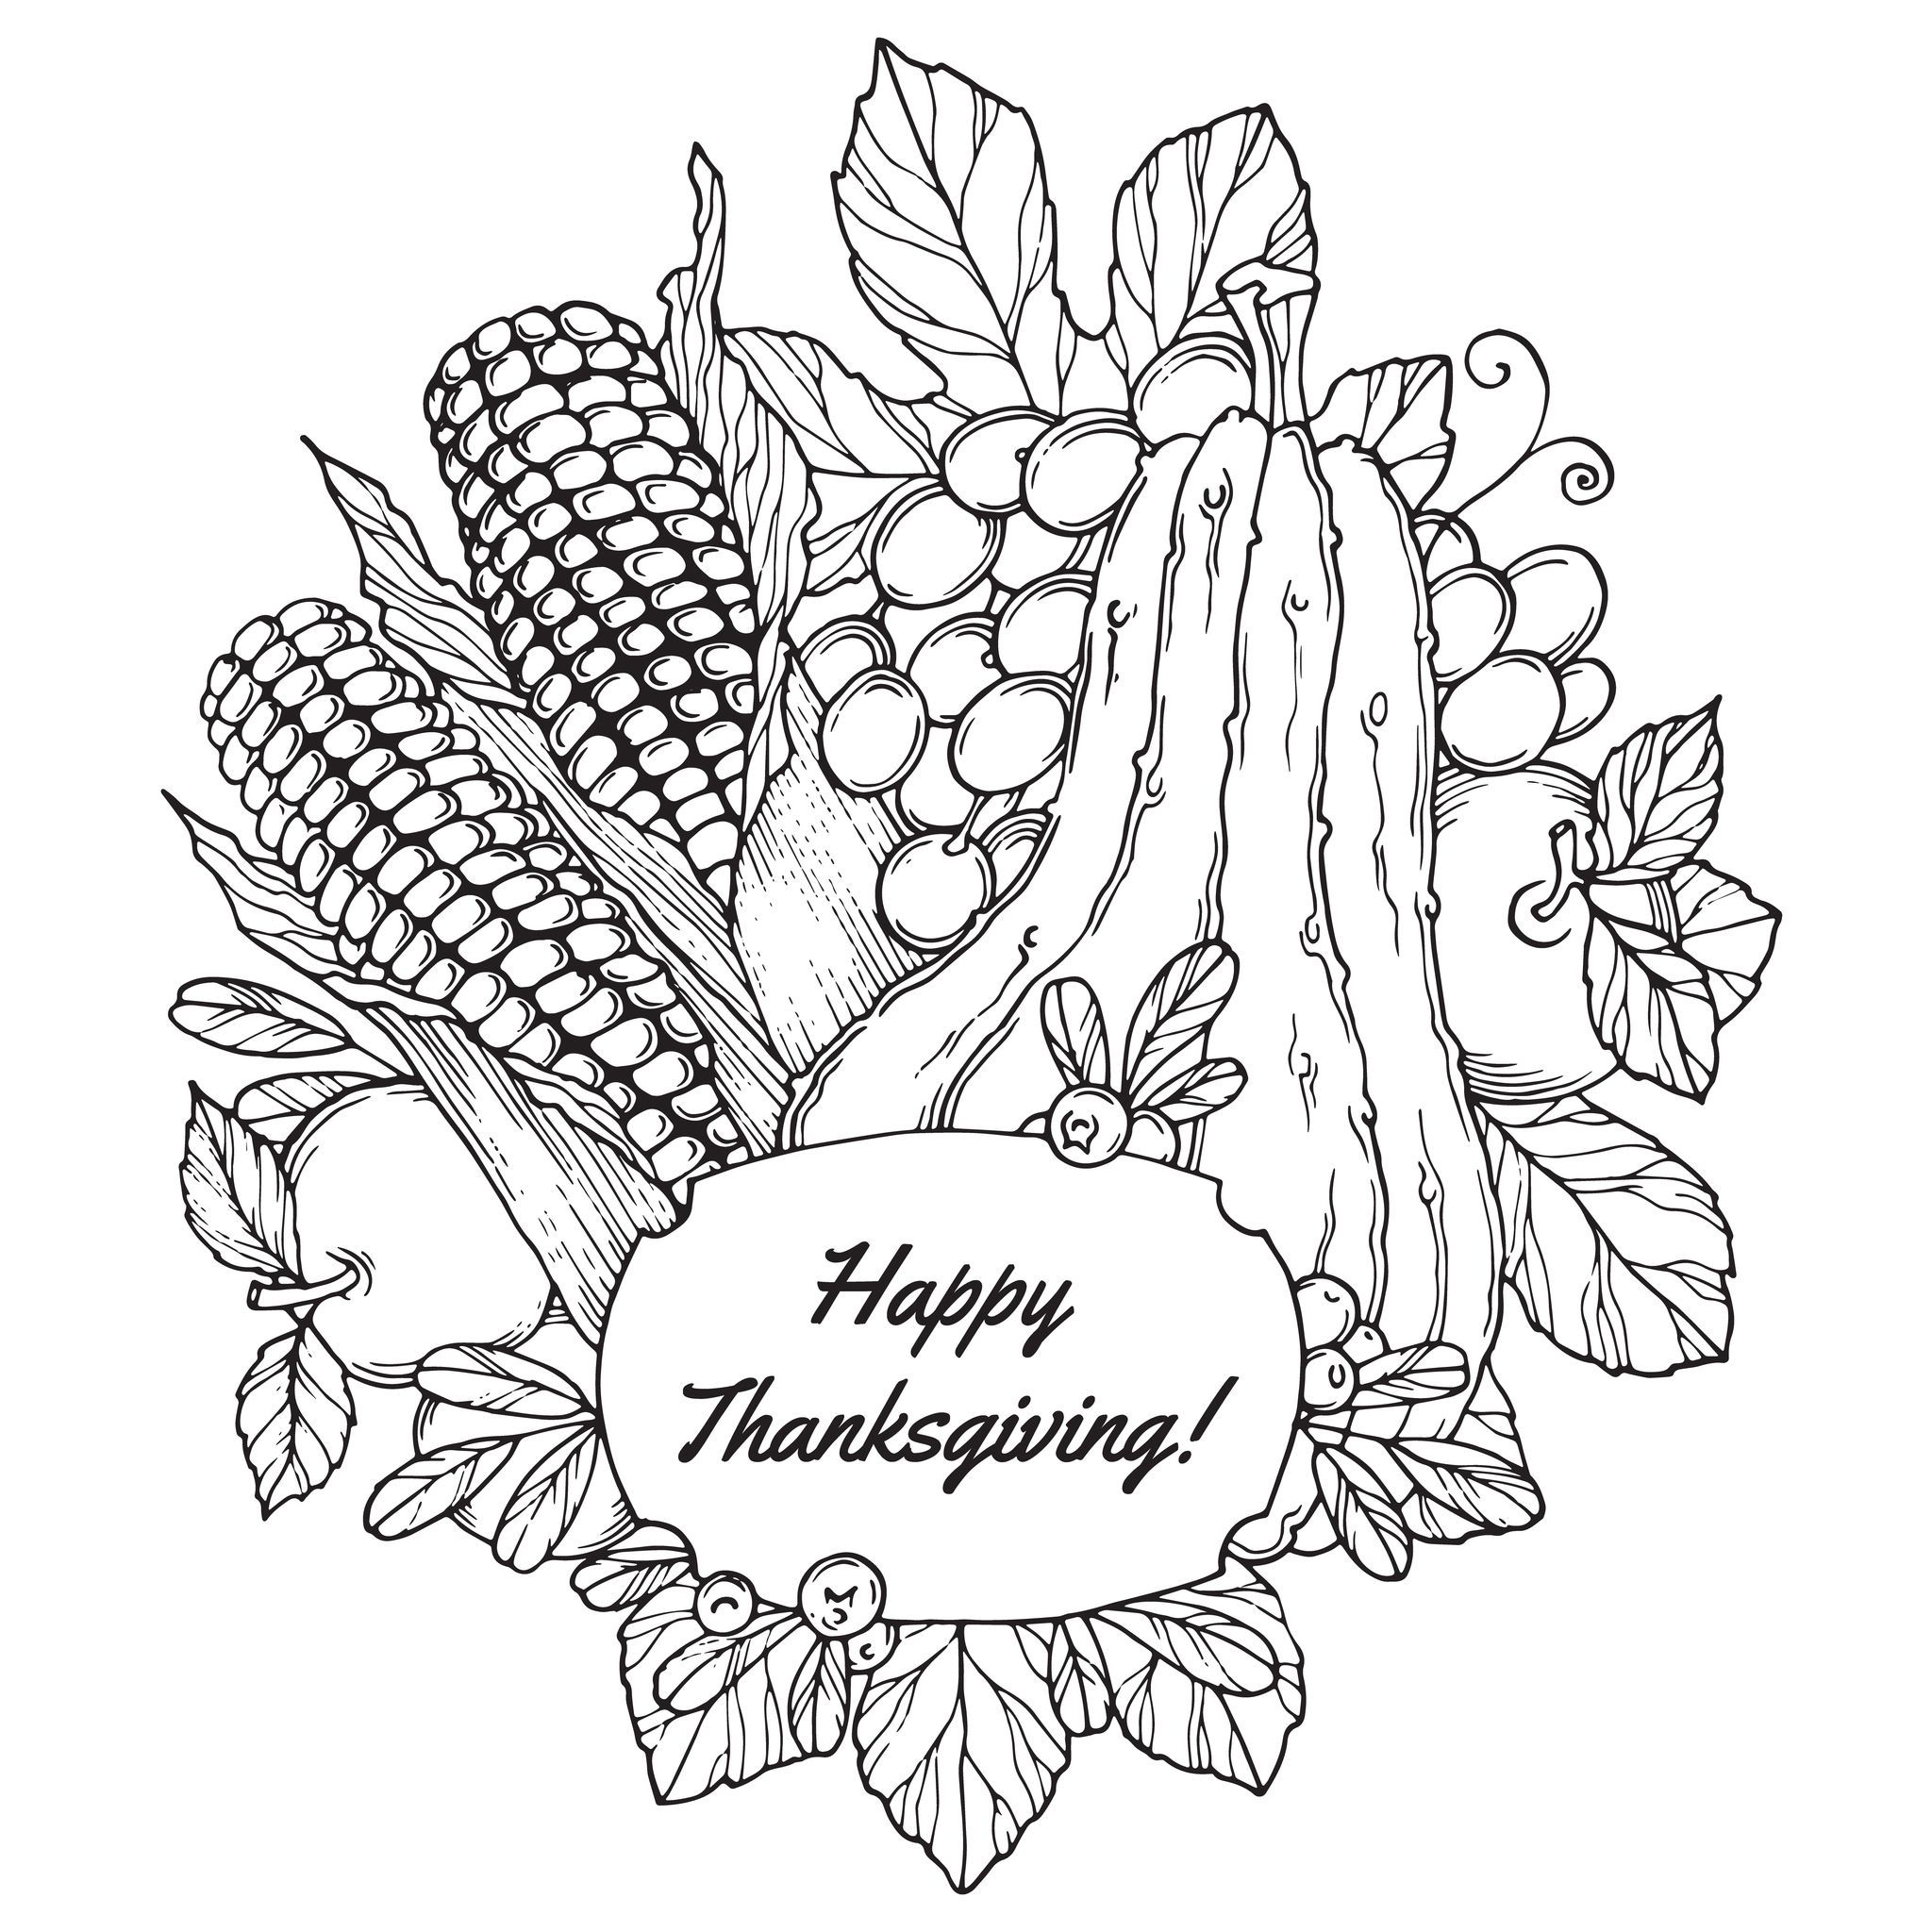 Coloring page to color in October with berries, vegetables and ...